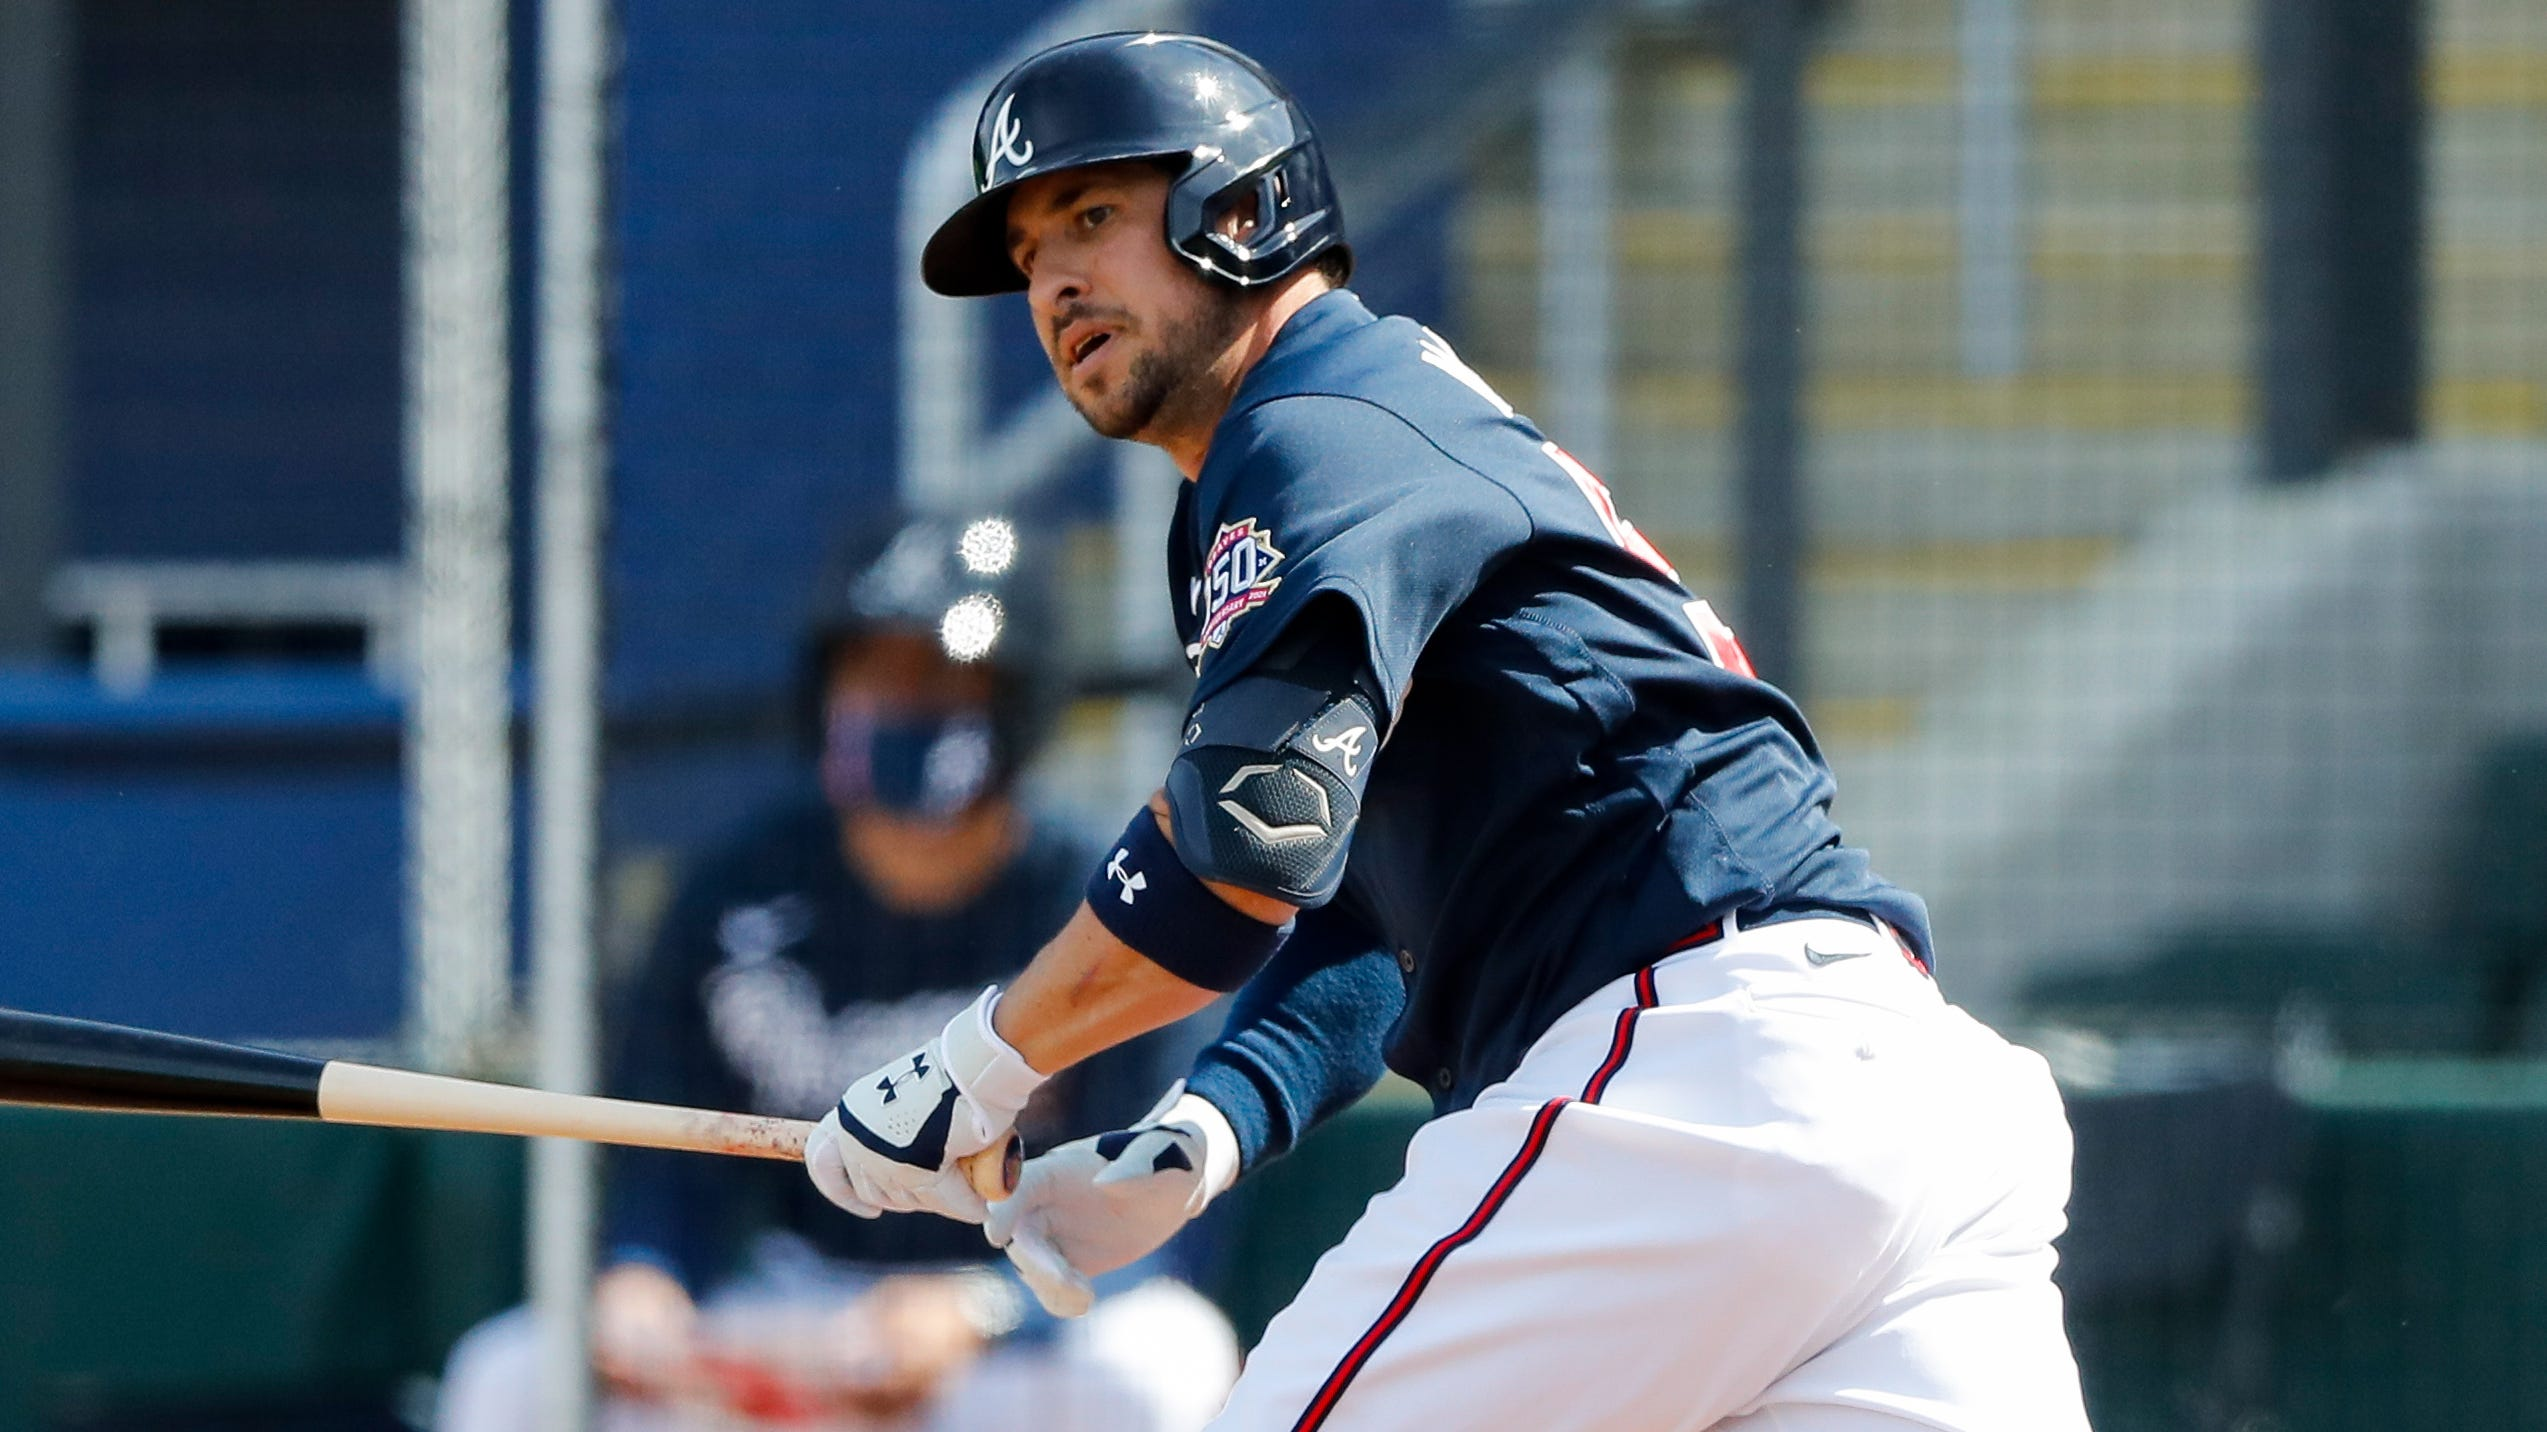 'A movie waiting to happen': Braves infielder Sean Kazmar Jr. makes first MLB appearance since 2008